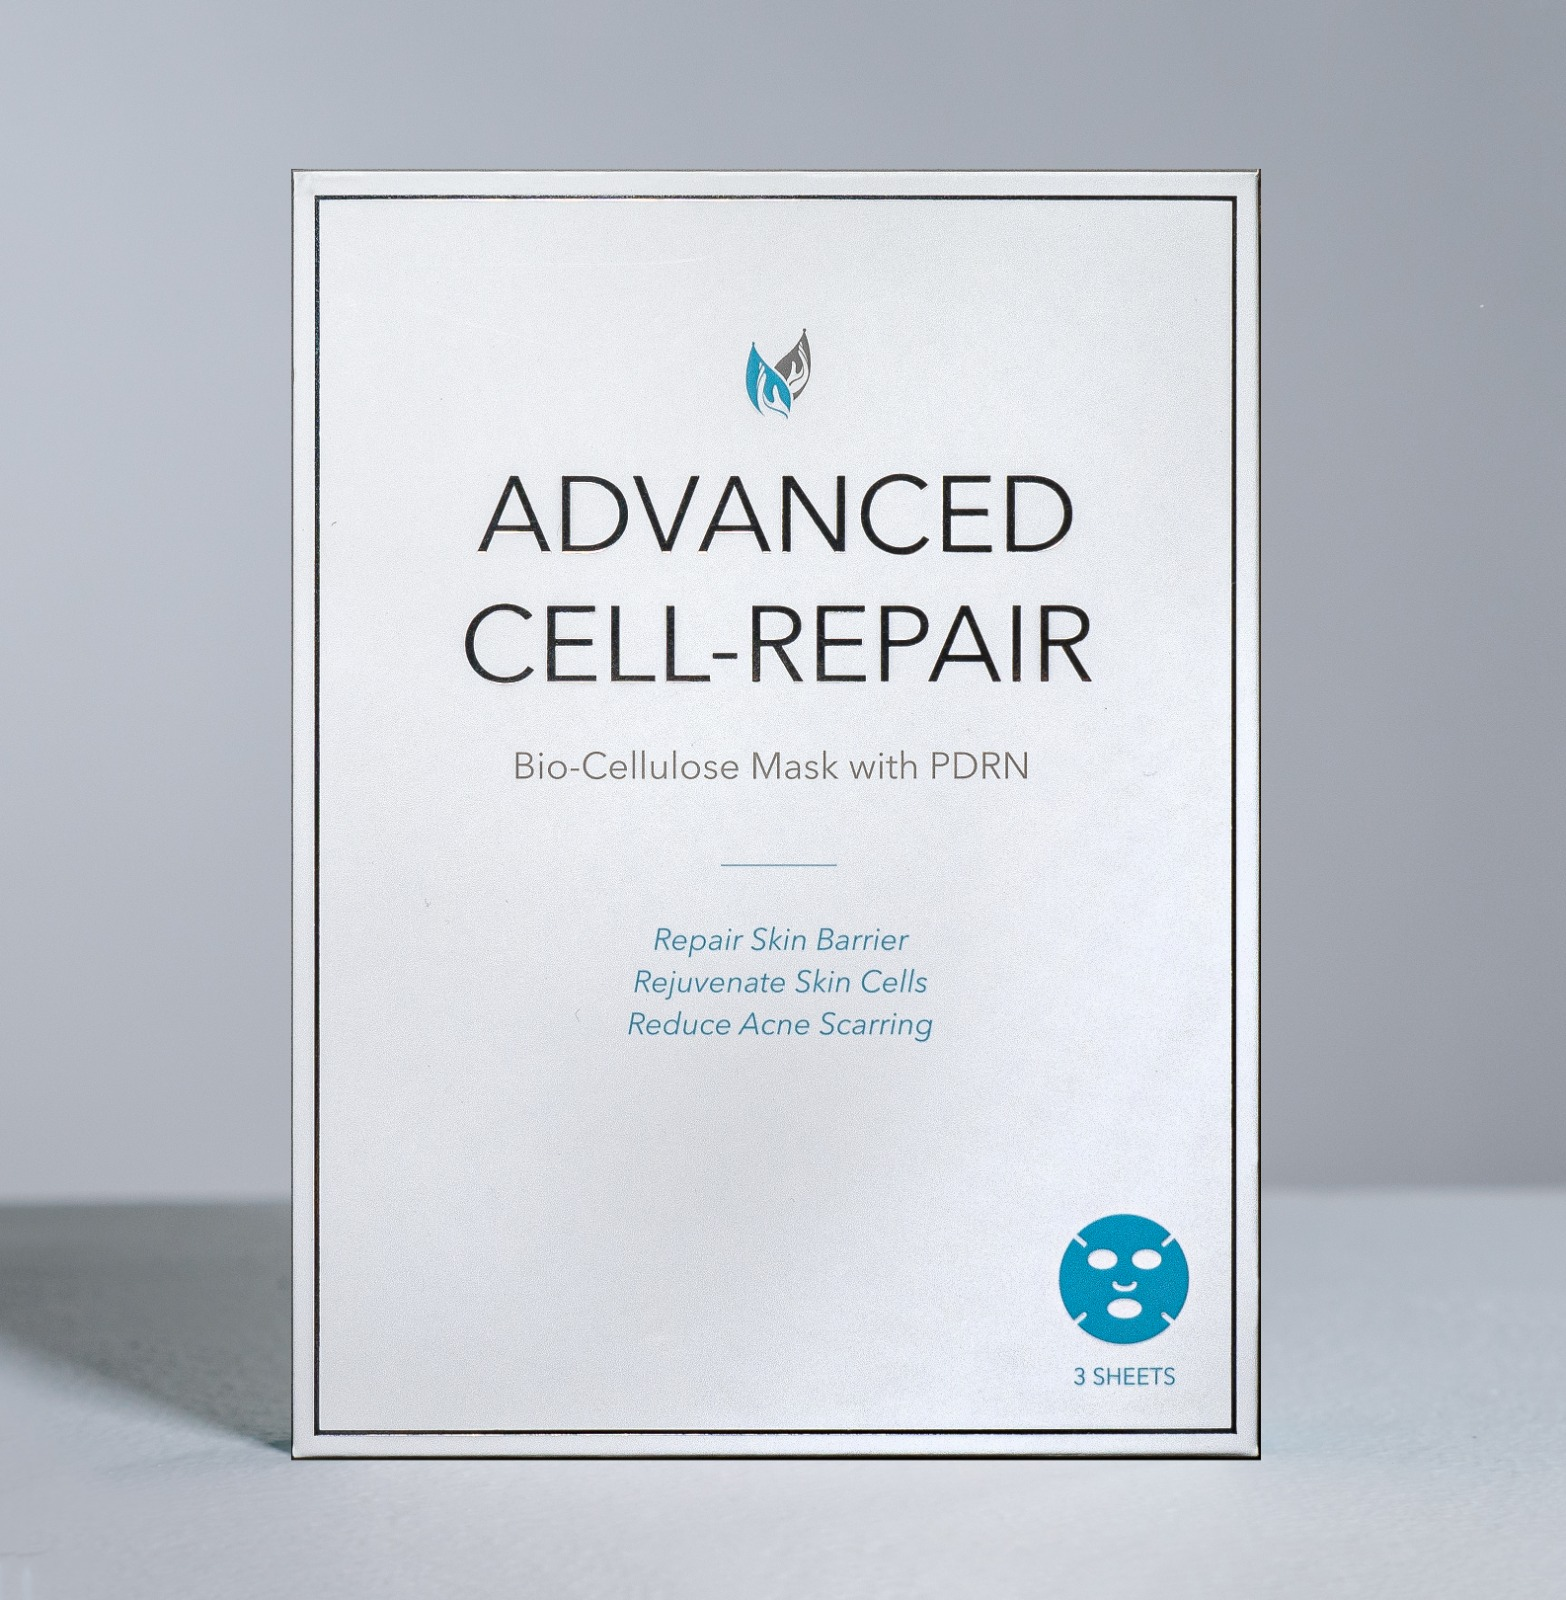 Advanced Cell-Repair Bio-Cellulose Mask